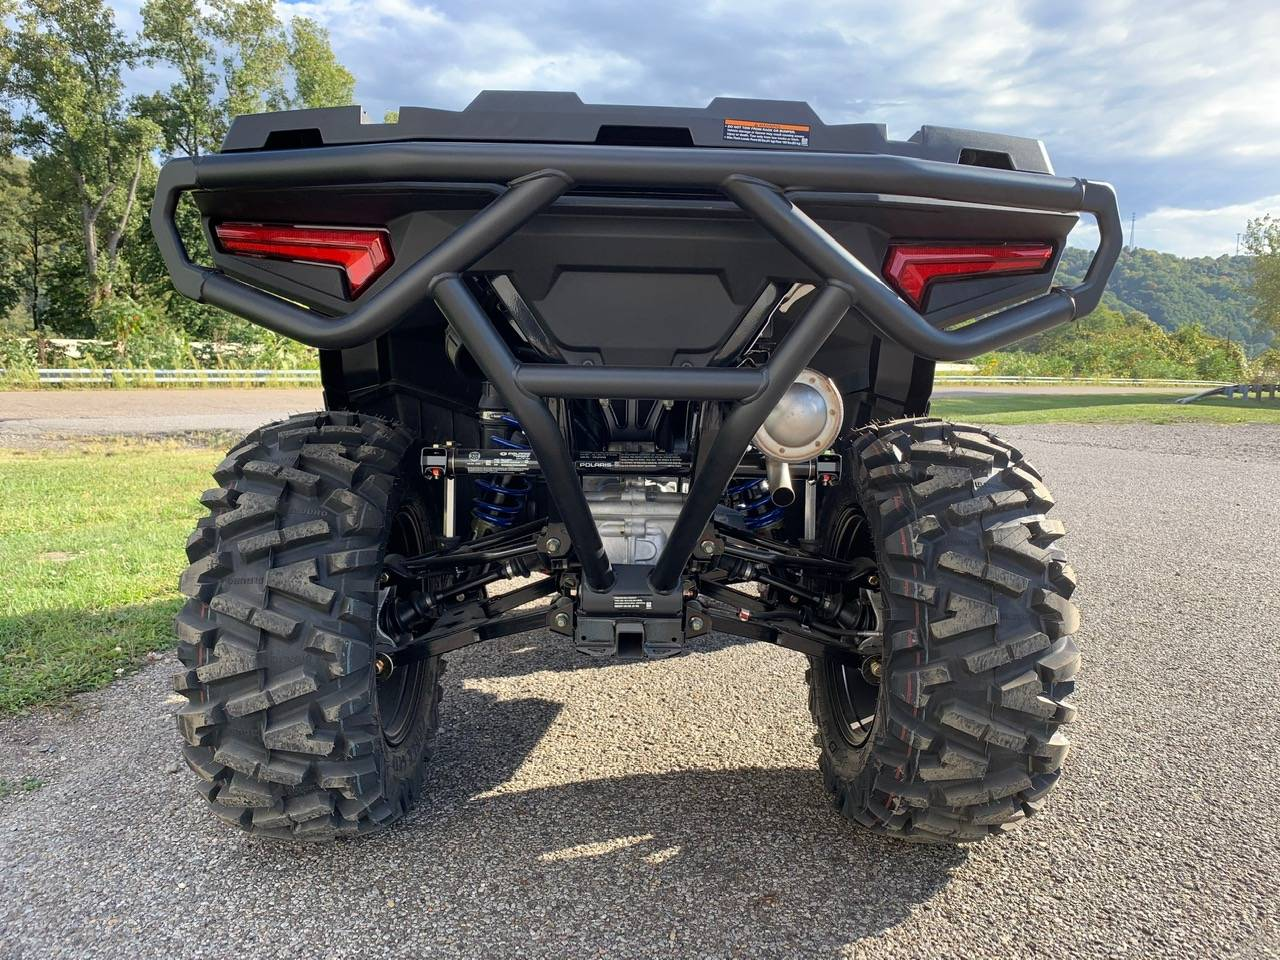 2021 Polaris Sportsman 570 Trail in Brilliant, Ohio - Photo 4